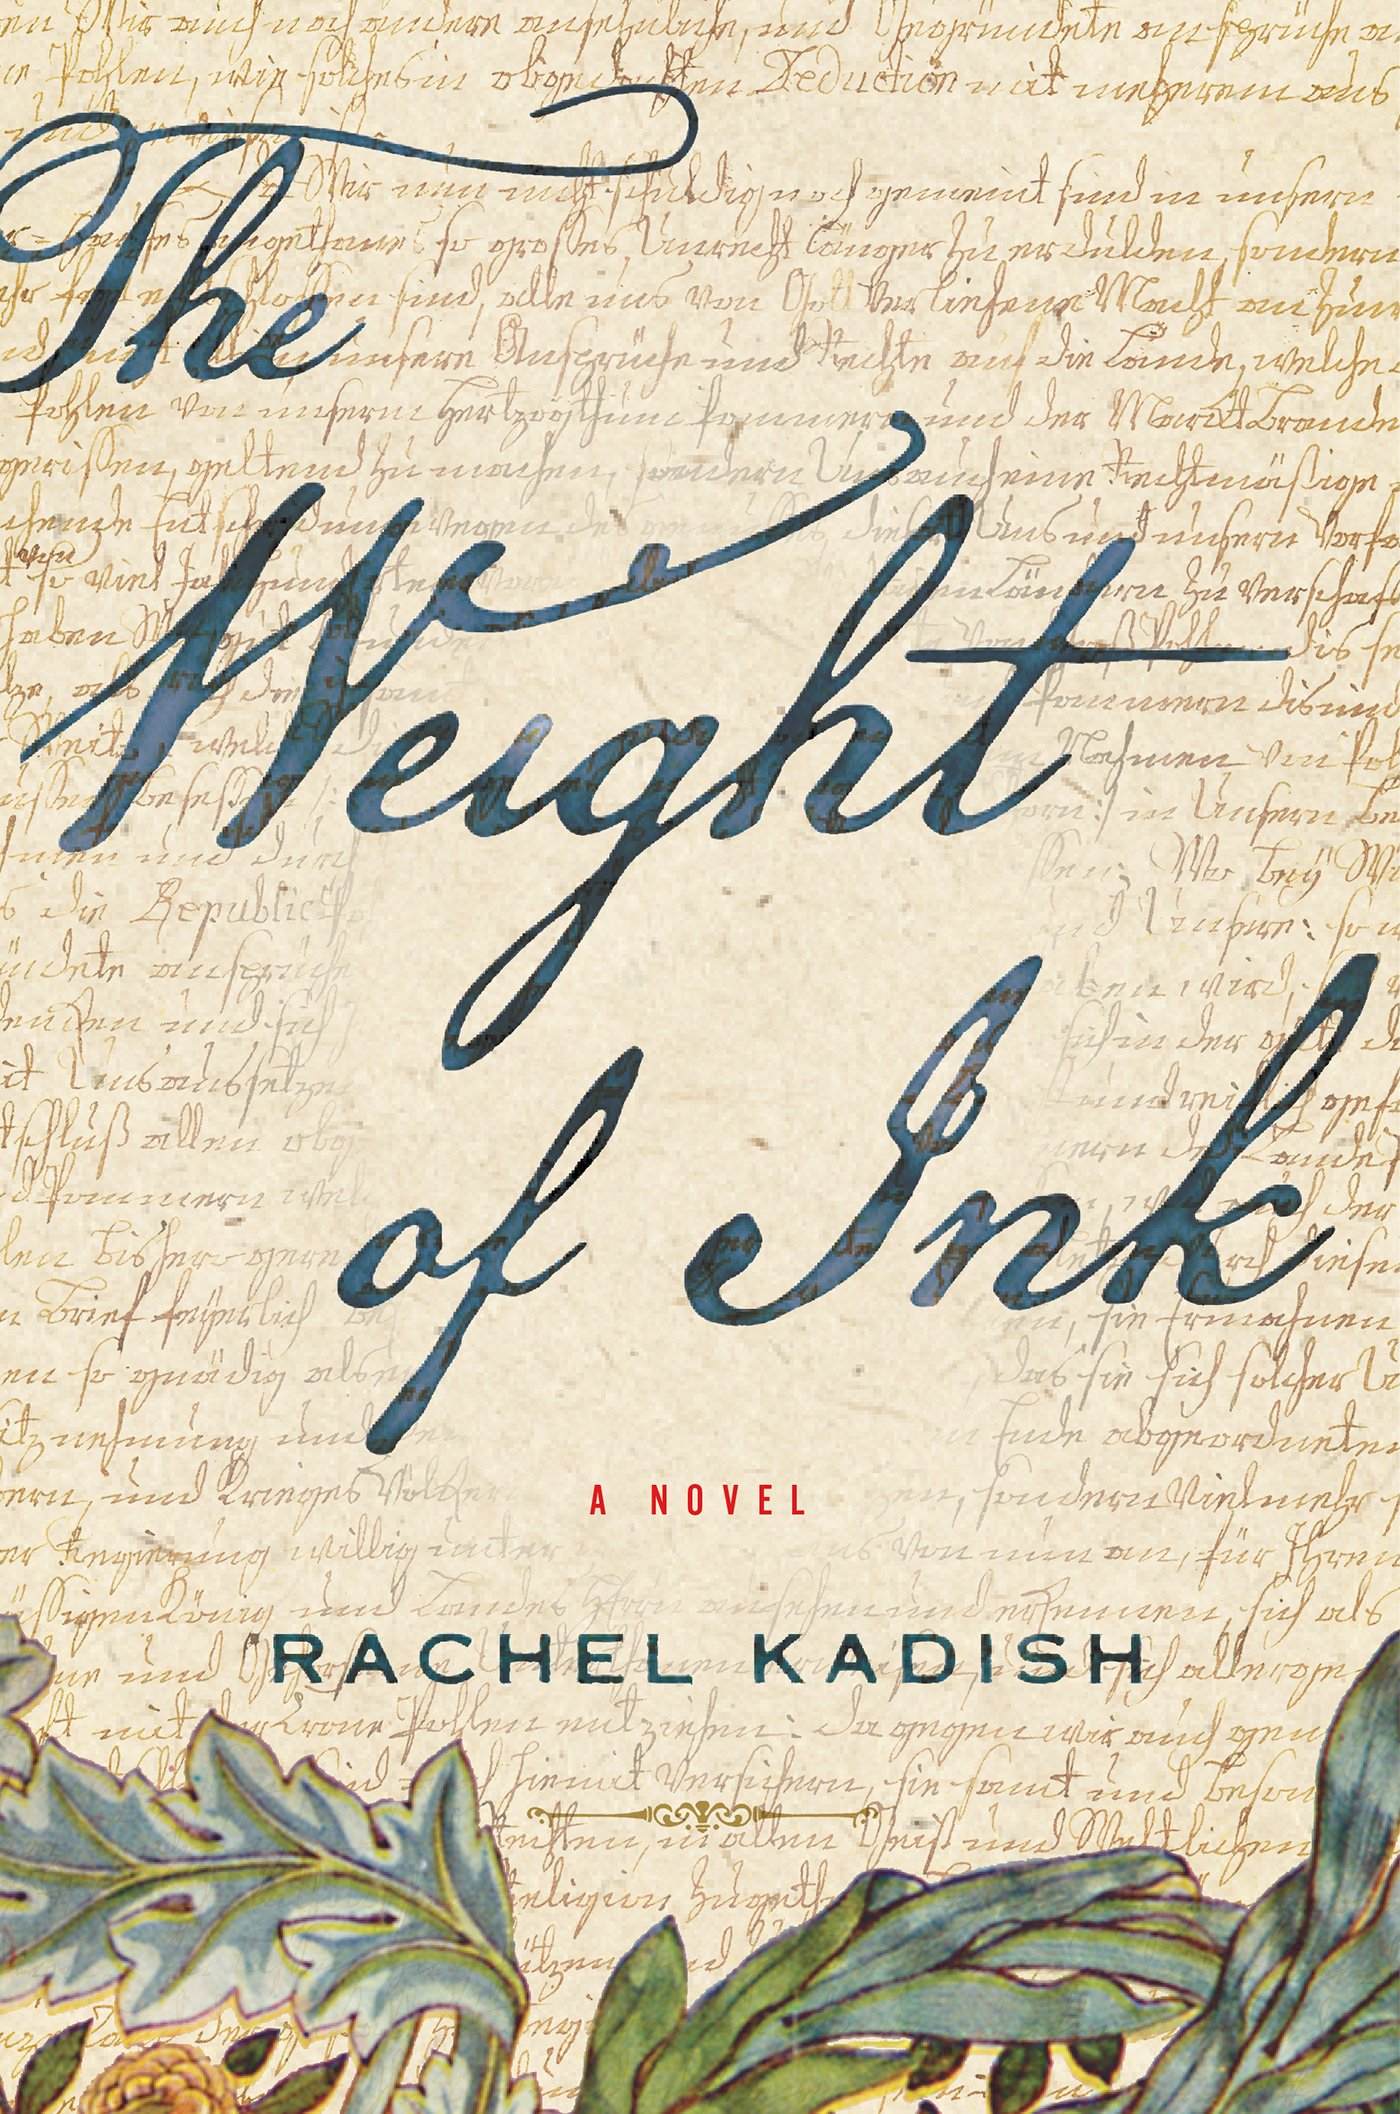 HOOPLA BOOK CLUB DISCUSSION: THE WEIGHT OF INK BY RACHEL KADISH @ On Zoom - contact Molly Robinson at mrobinson@rappahannock.edu for Zoom link information.